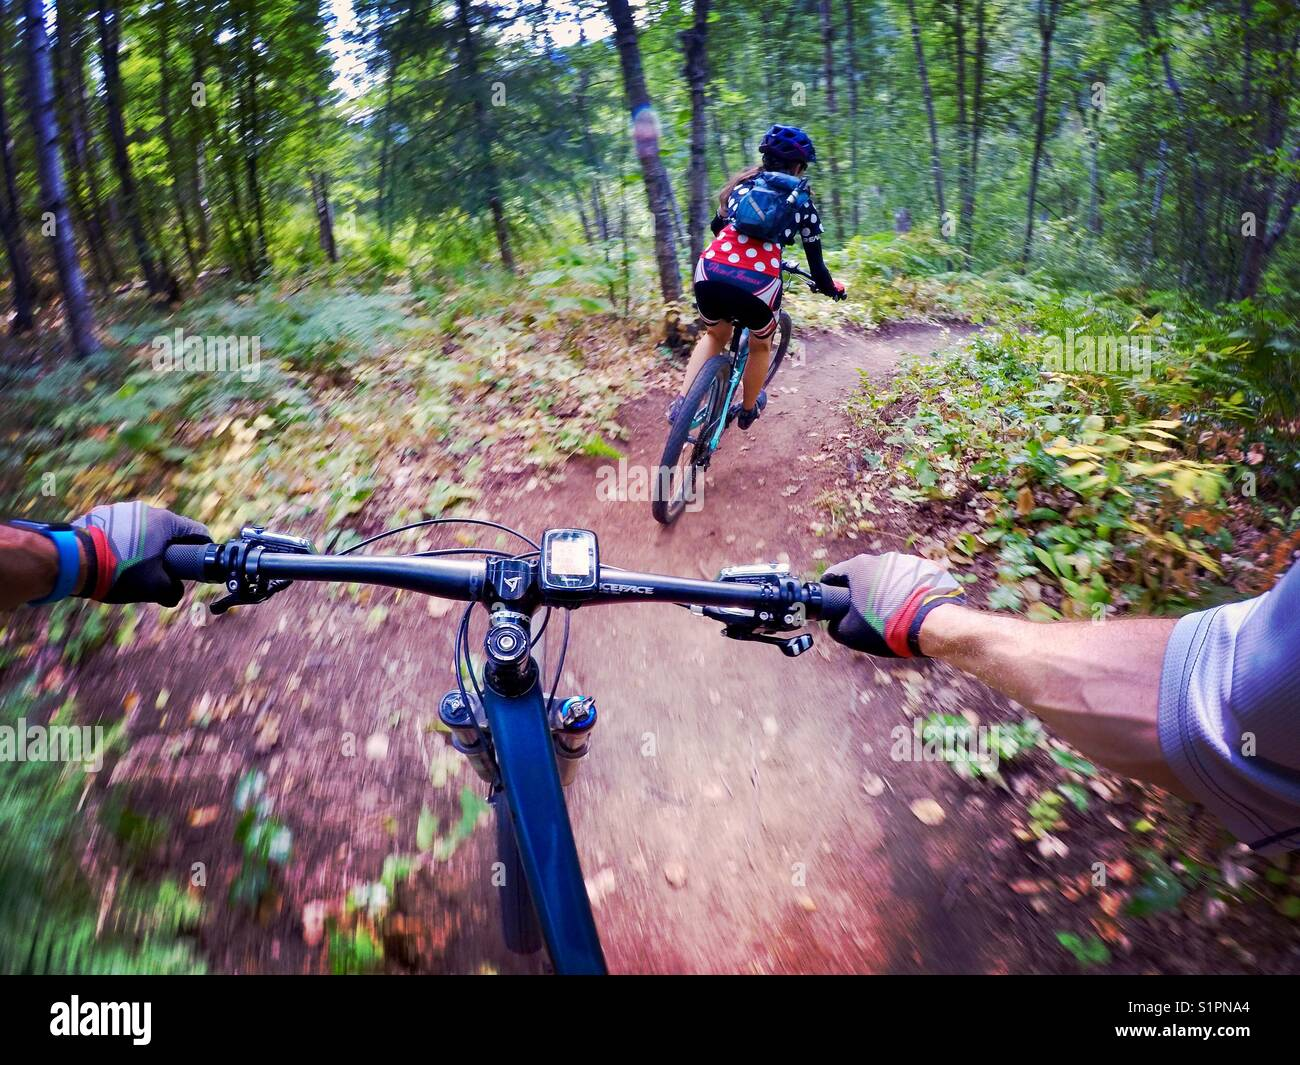 A male and female mountain biker speed down a trail with the female leading the pack - Stock Image